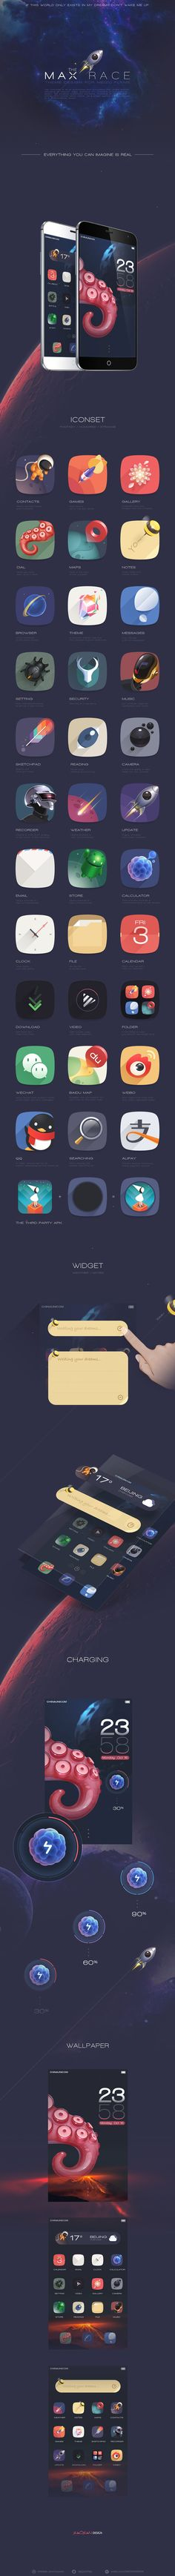 Beautiful case study on icons and UI https://dribbble.com/shots/1783504-THEME-FOR-FLYME?list=following&offset=0